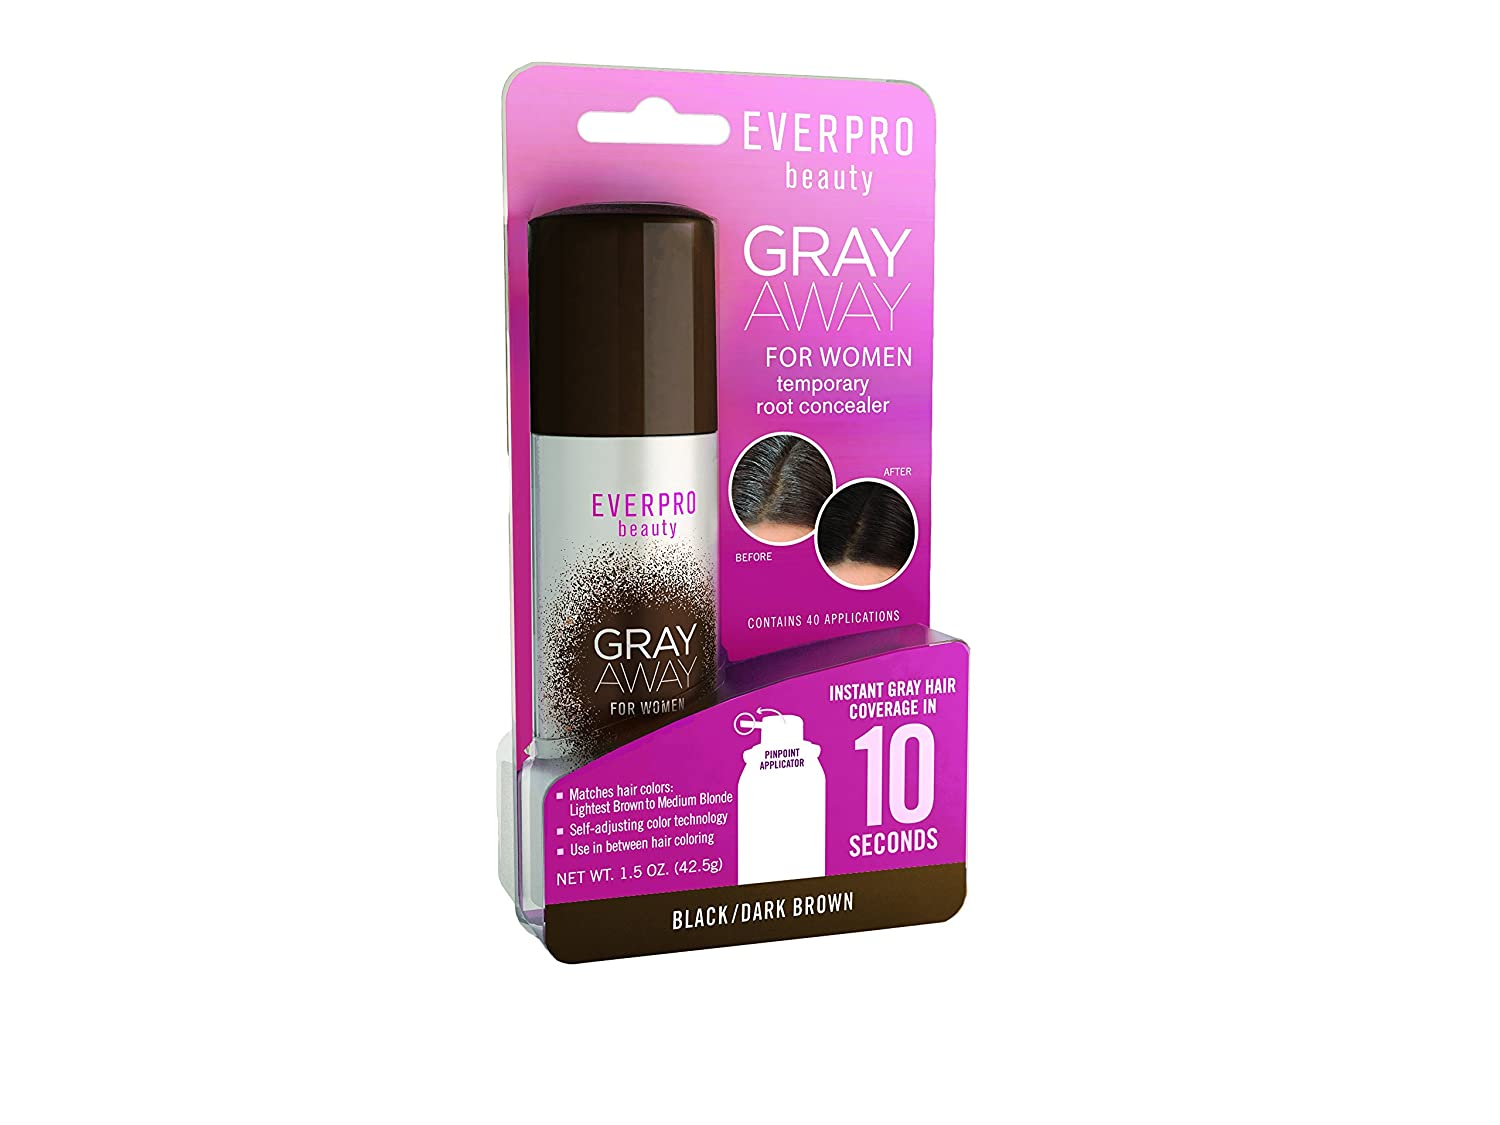 Everpro Gray Away Temporary Root Concealer, Black/Dark Brown 1.5 oz 1301